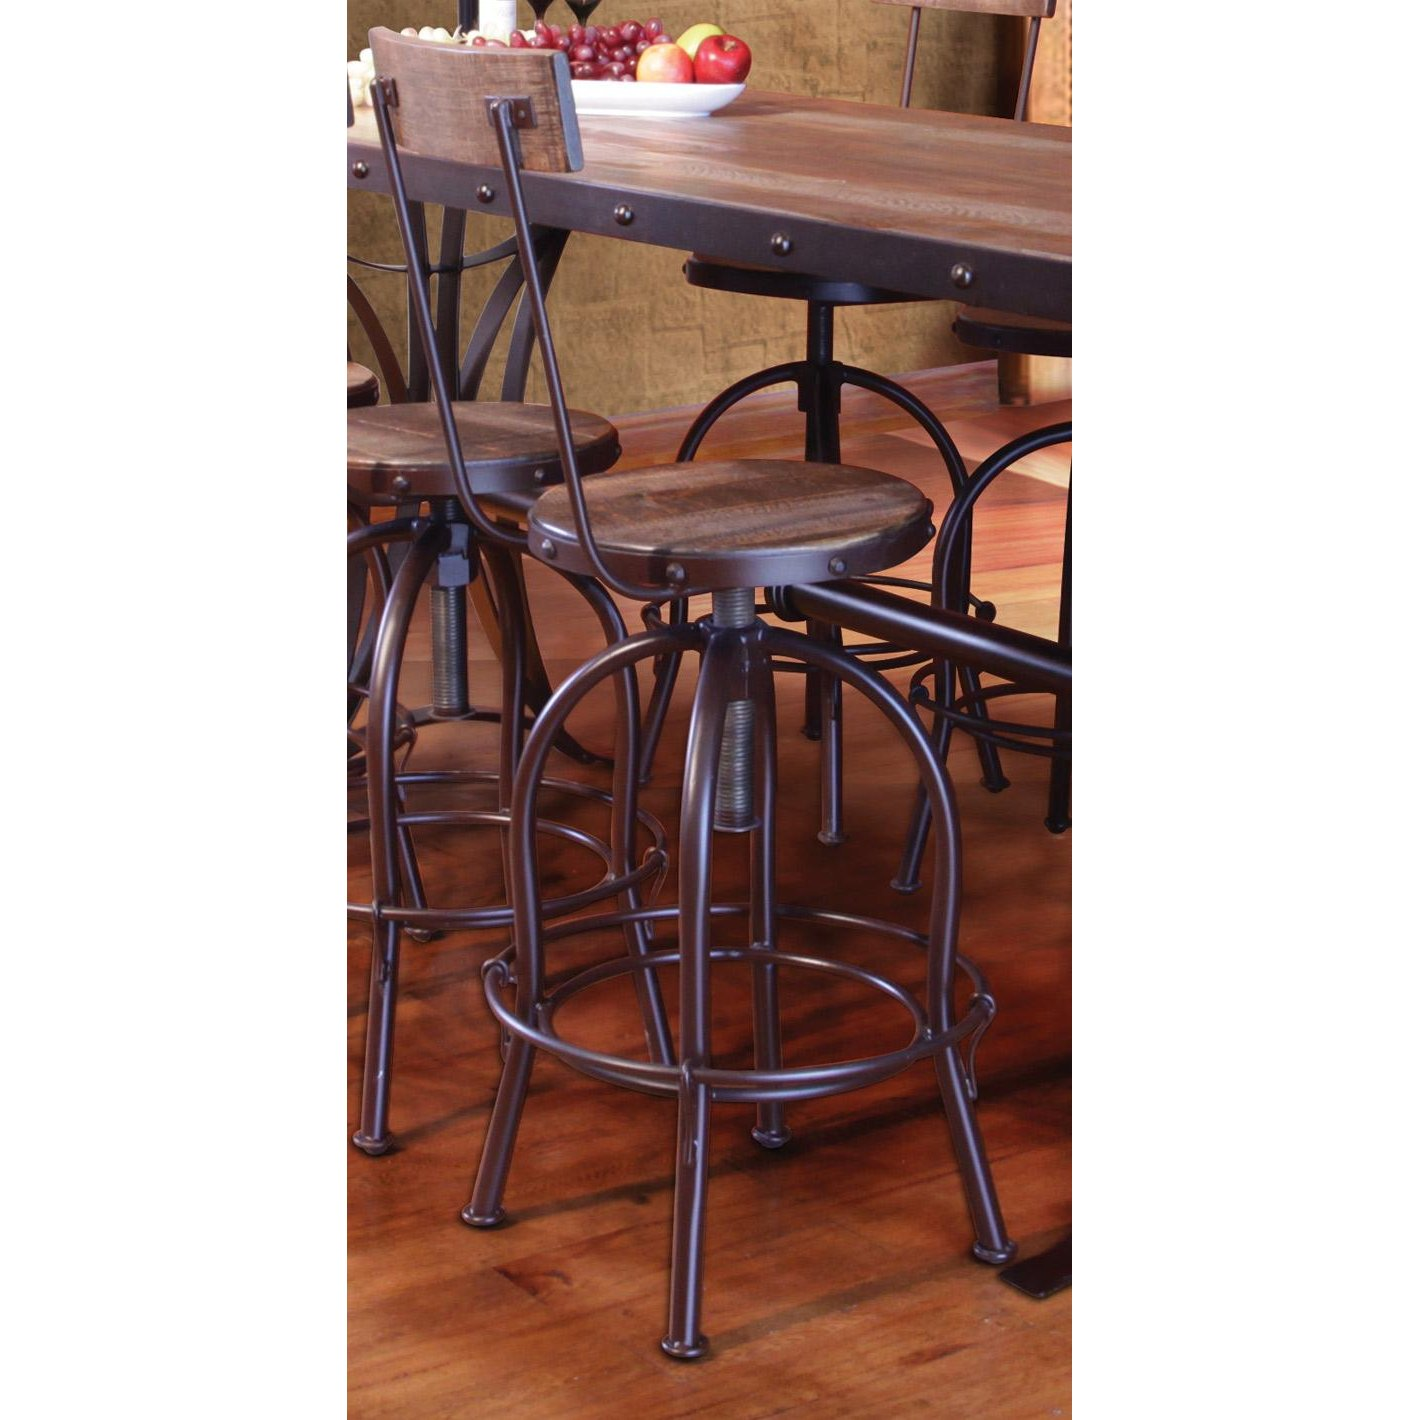 Antique Pine Amp Metal Adjustable Stool With Back Rc